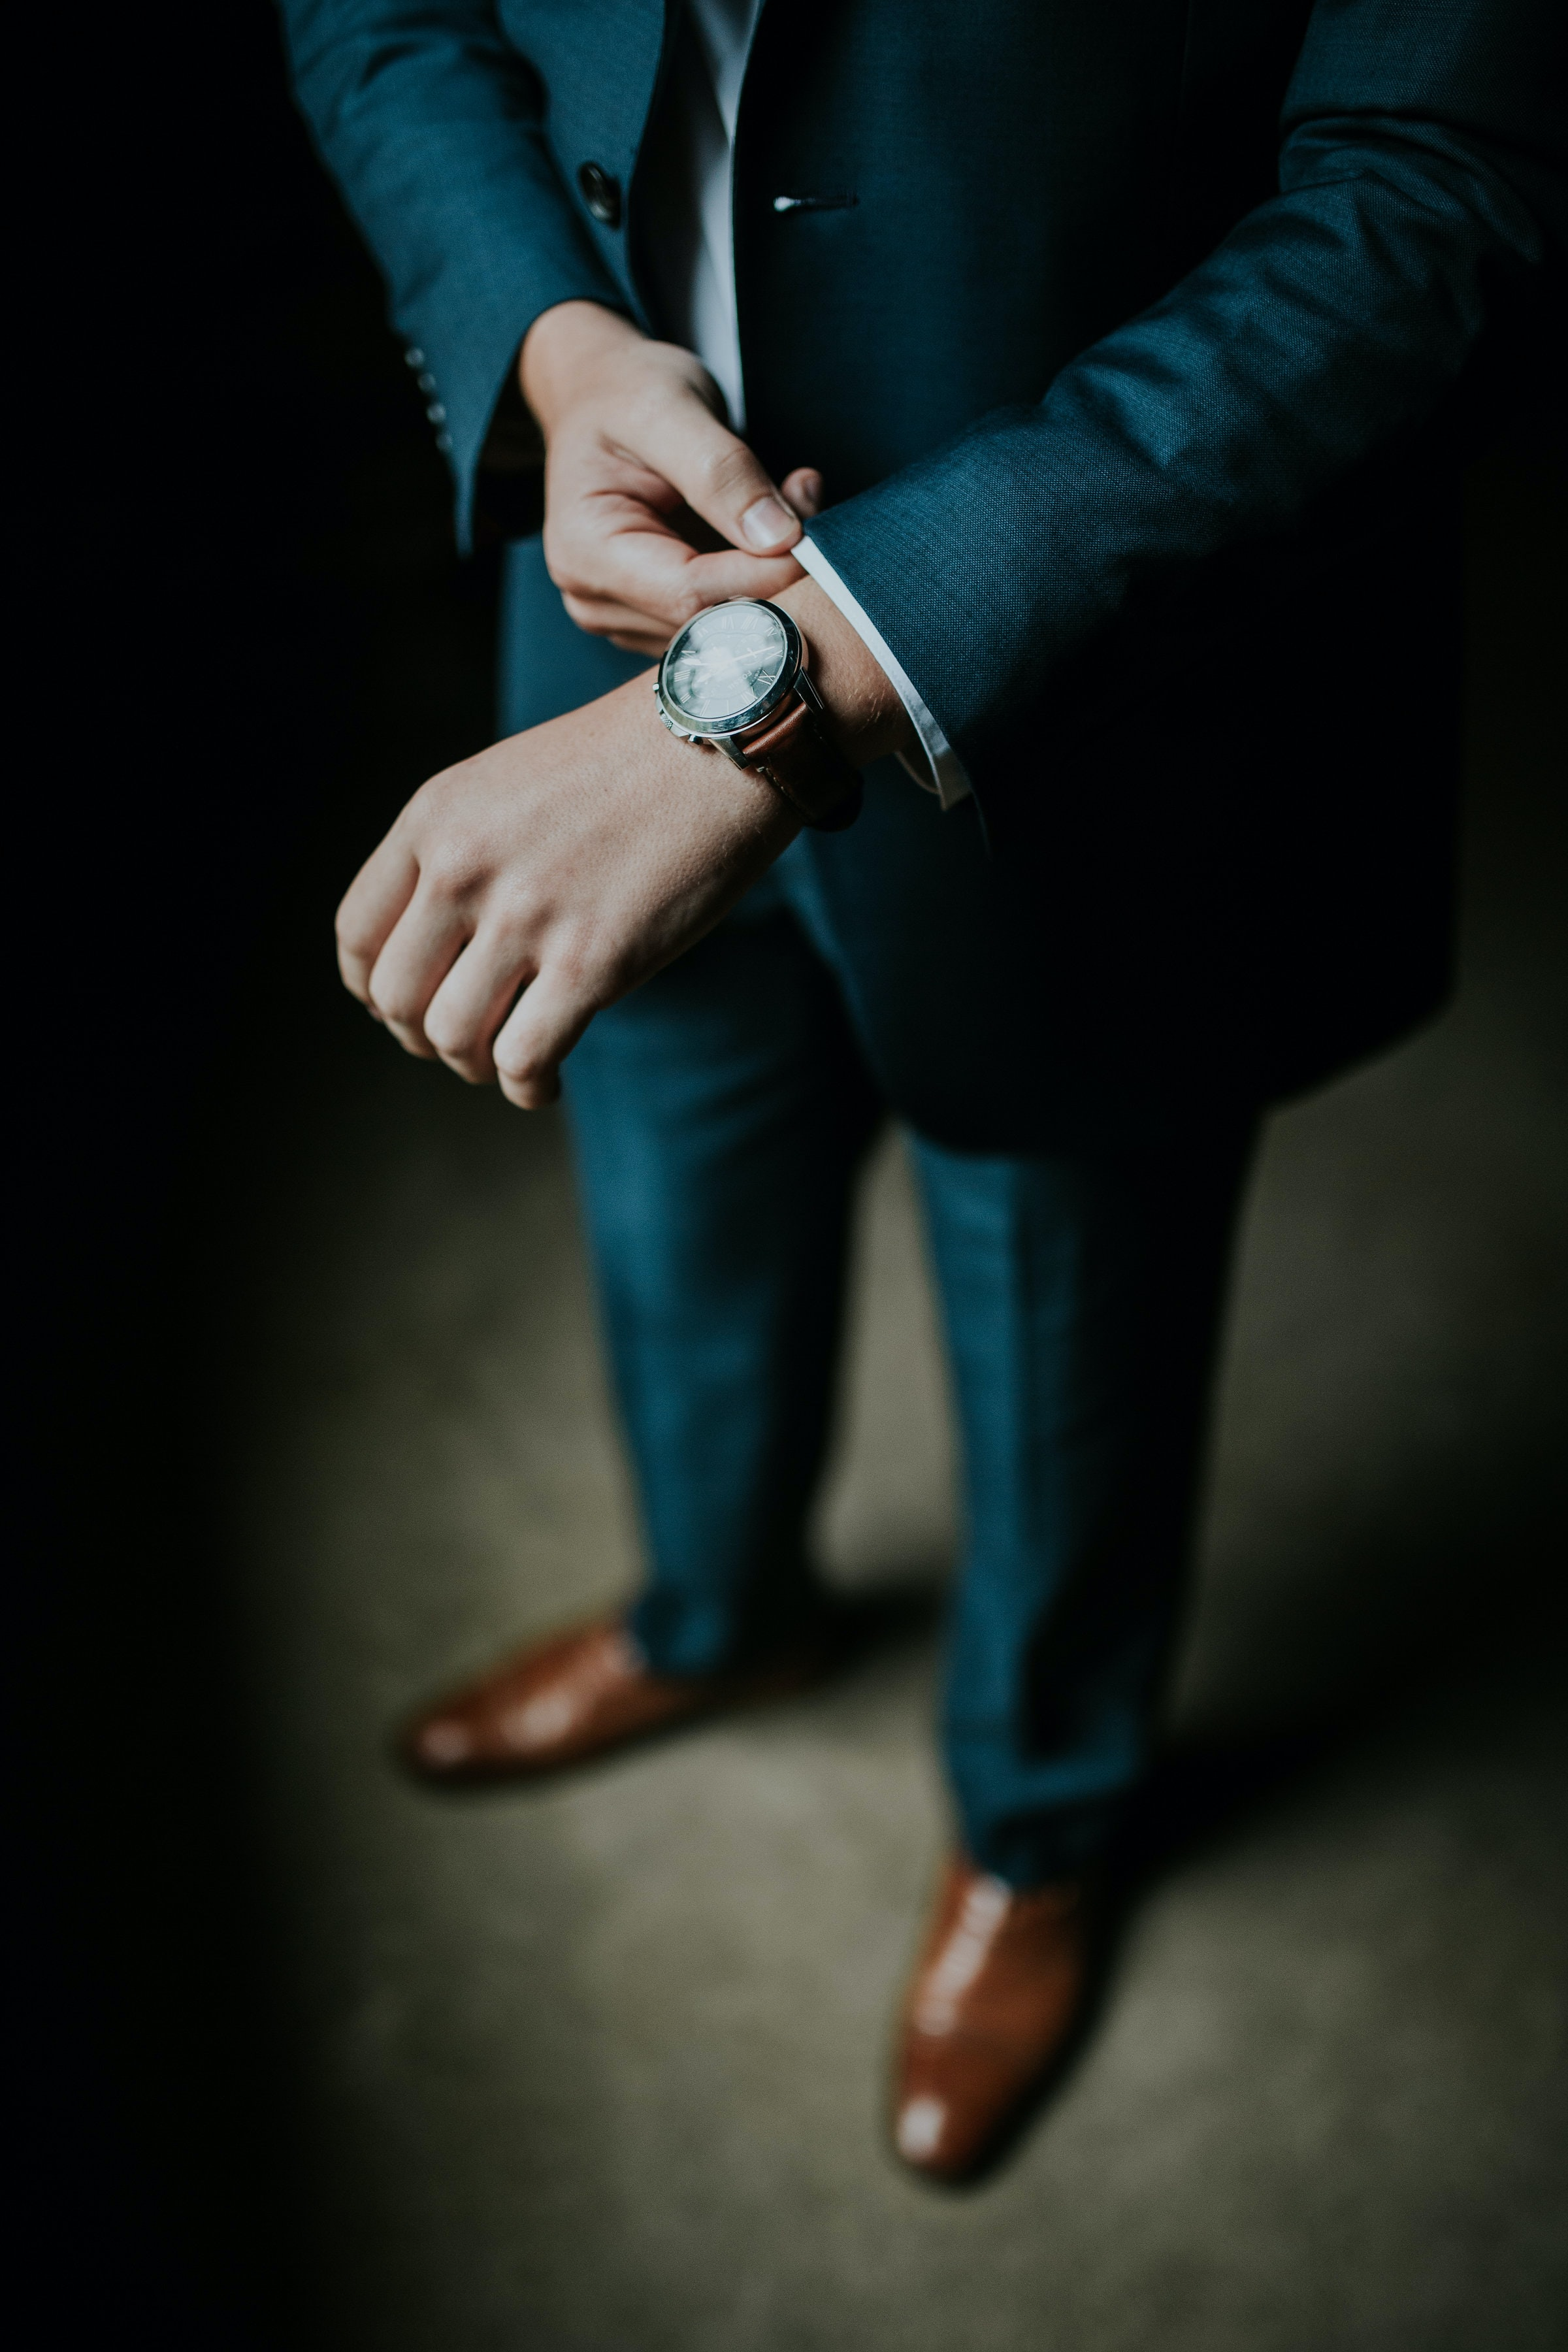 A man in an elegant suit adjusting the sleeve of his shirt